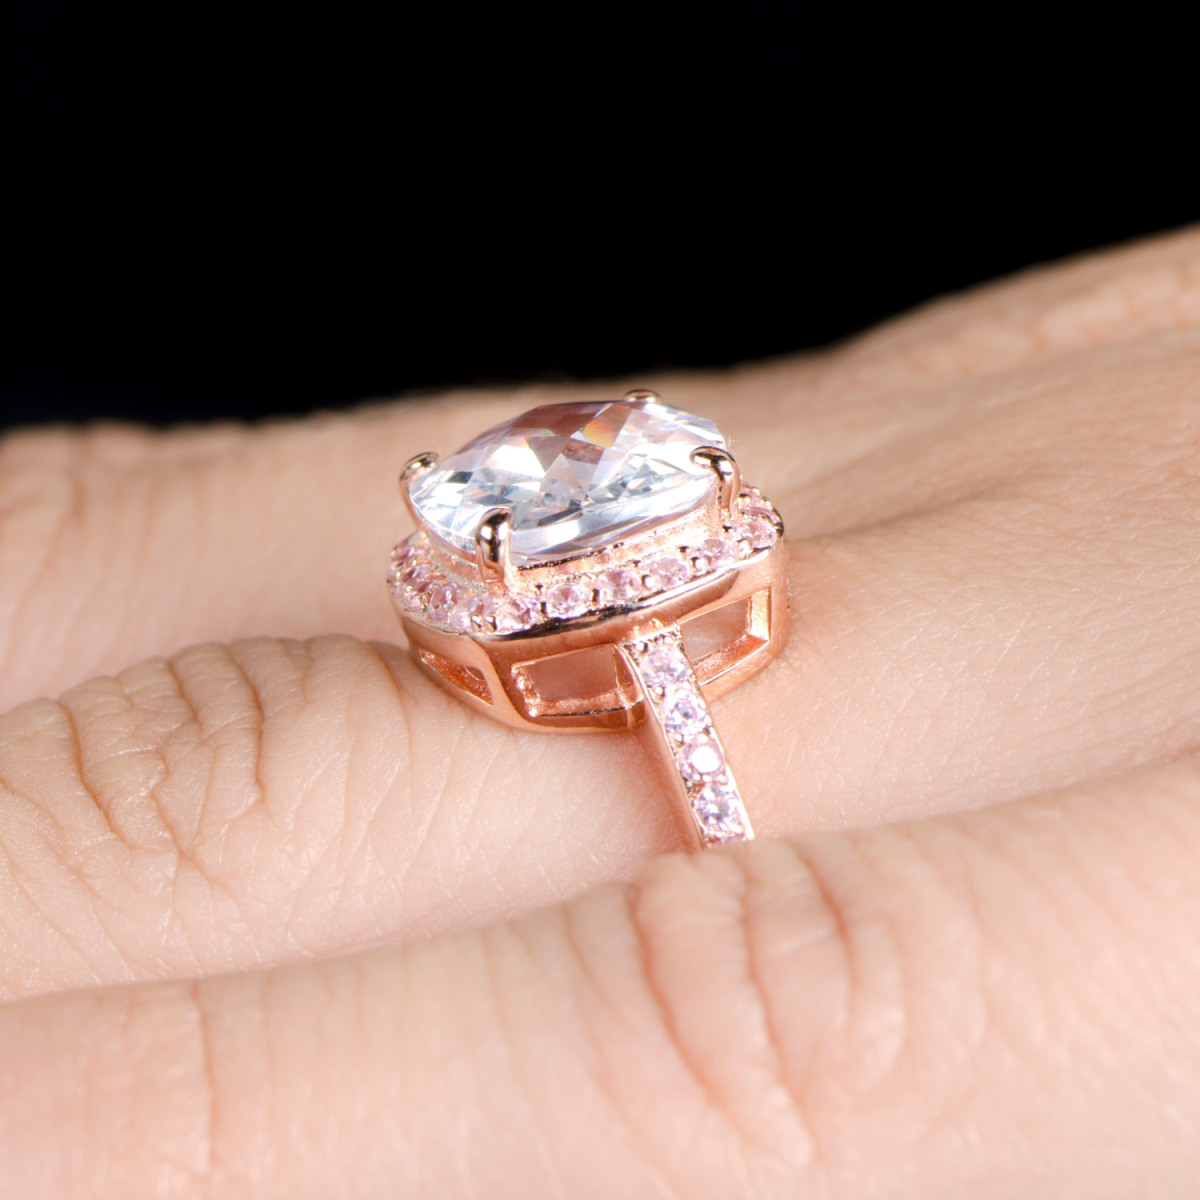 diamond engagement ring 3 4 ct tw princess cut 14k rose gold rose gold wedding rings Hover to zoom